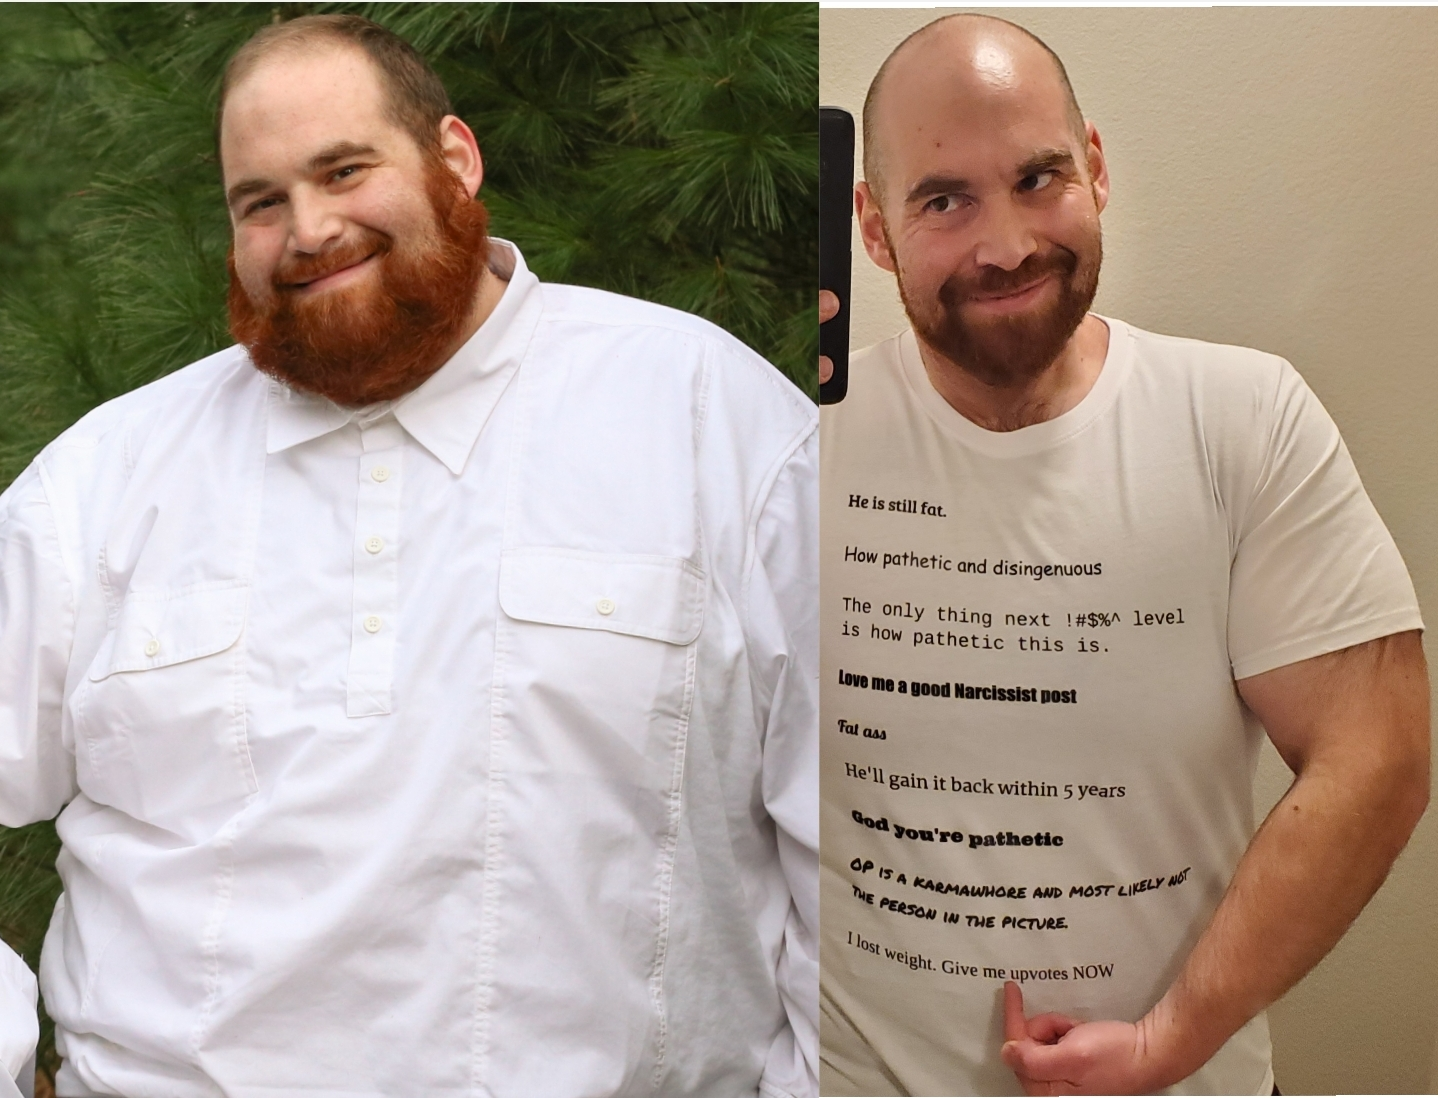 [Image] This guy takes down haters who try to prey on his insecurities like a boss. He wears the mean comments he got after after losing weight on his TShirt.